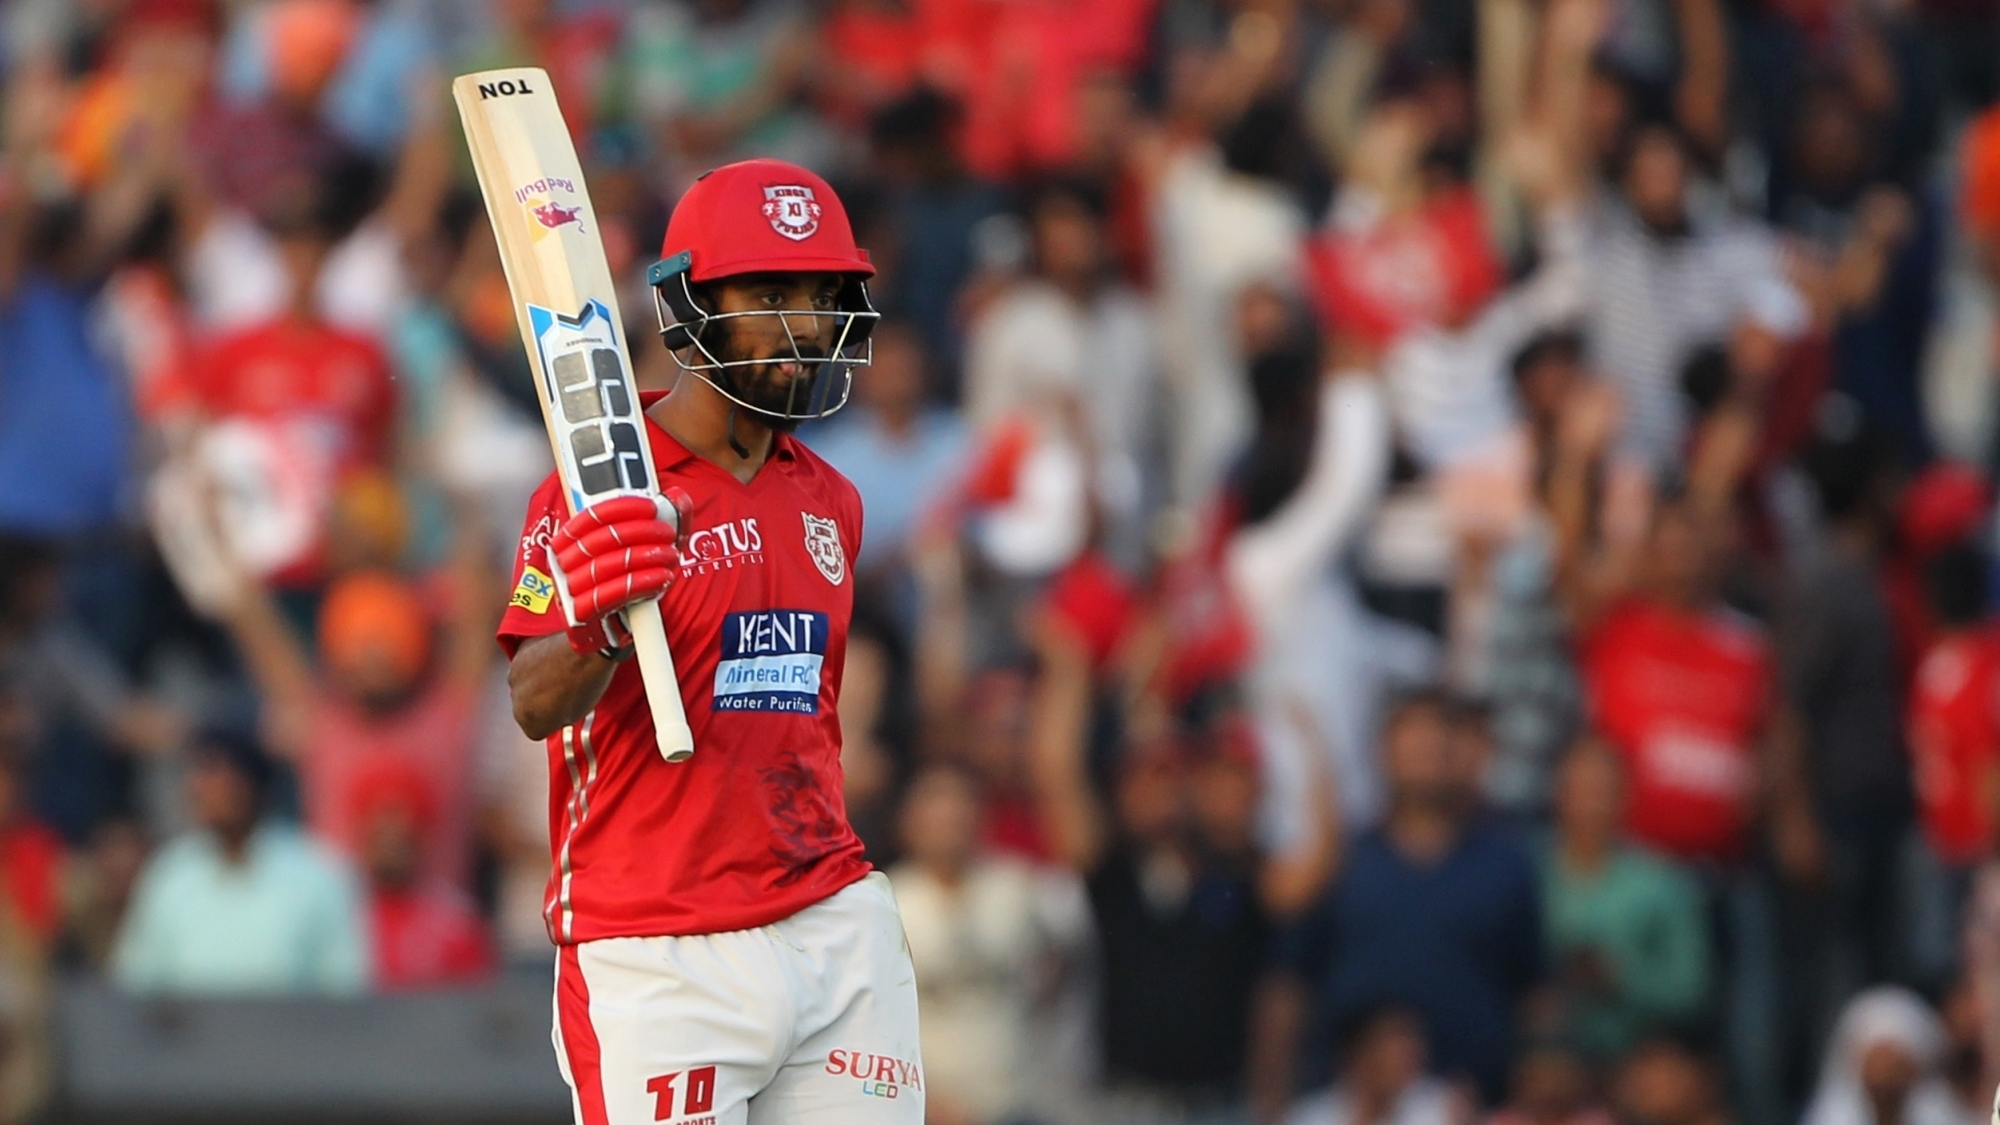 IPL 2018: More responsibilities with KXIP gives extra delight to KL Rahul than former franchise RCB